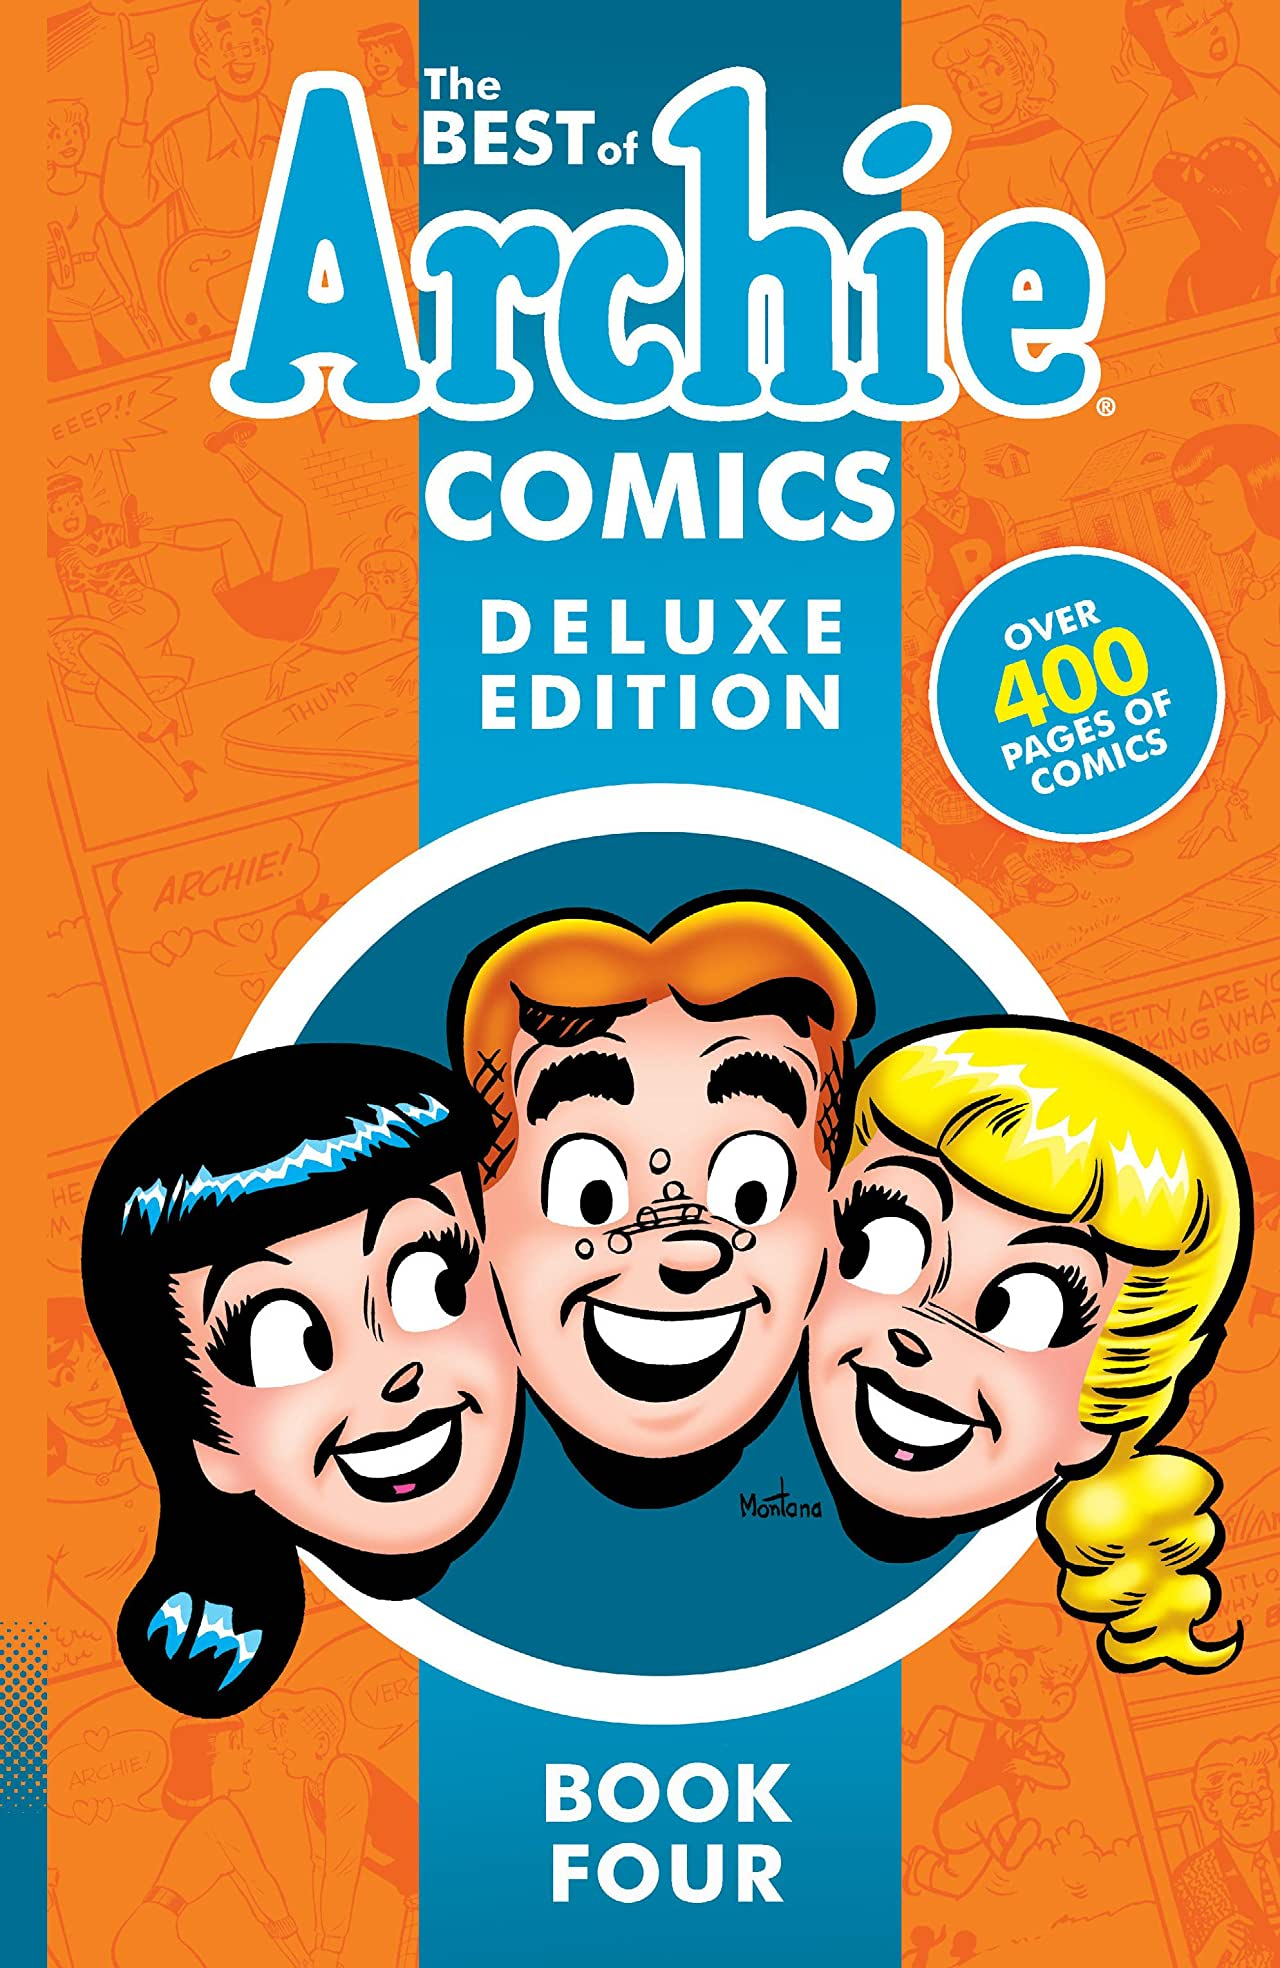 The Best of Archie Comics 4 Deluxe Edition